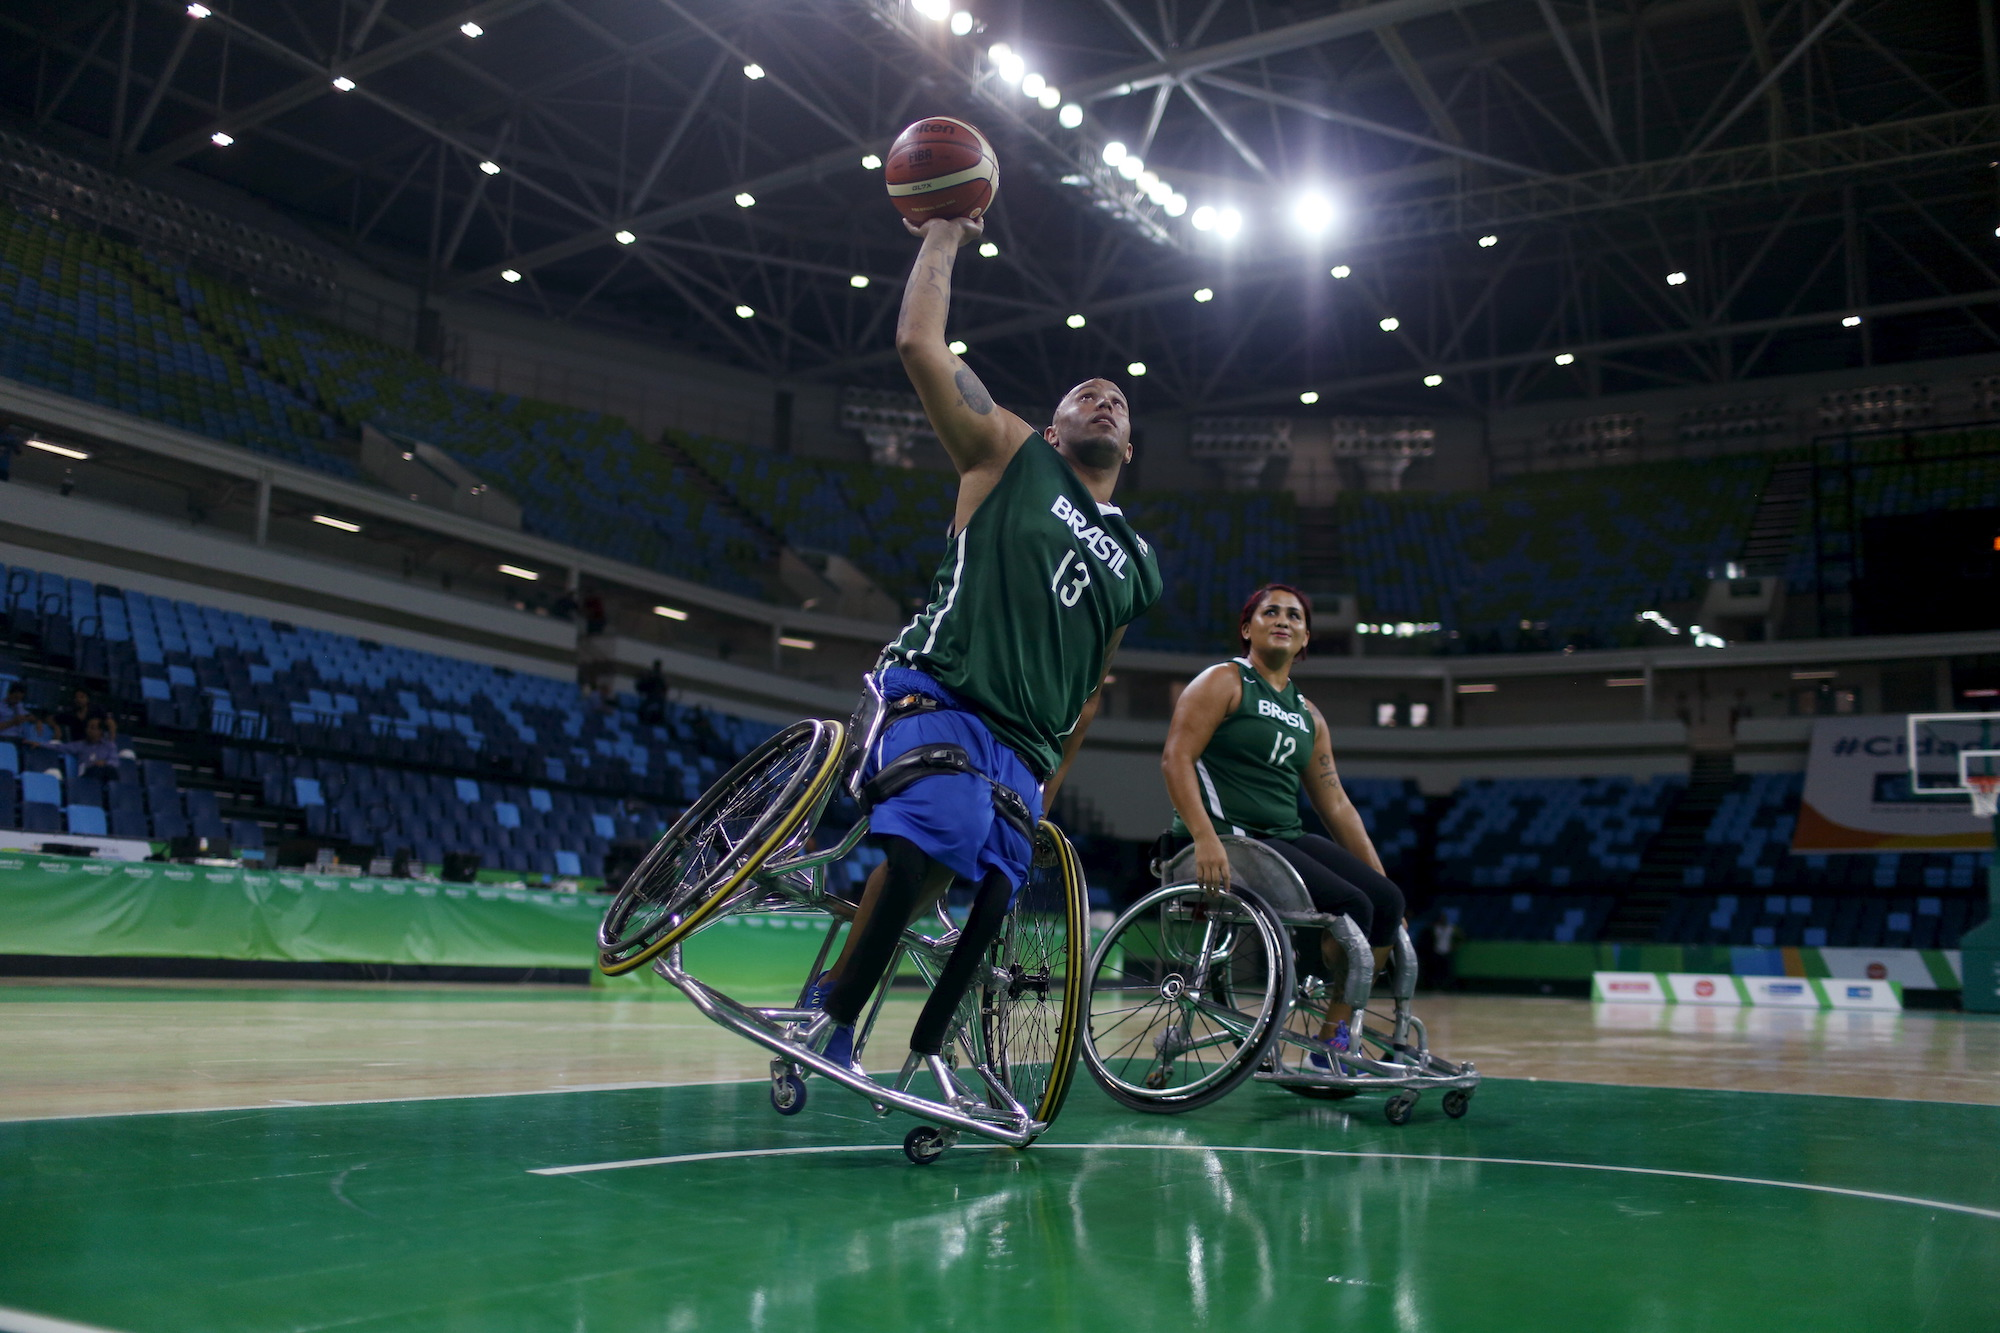 Paralympic athlete Leandro de Miranda throws a basketball. Image credit: Pilar Olivares / Reuters